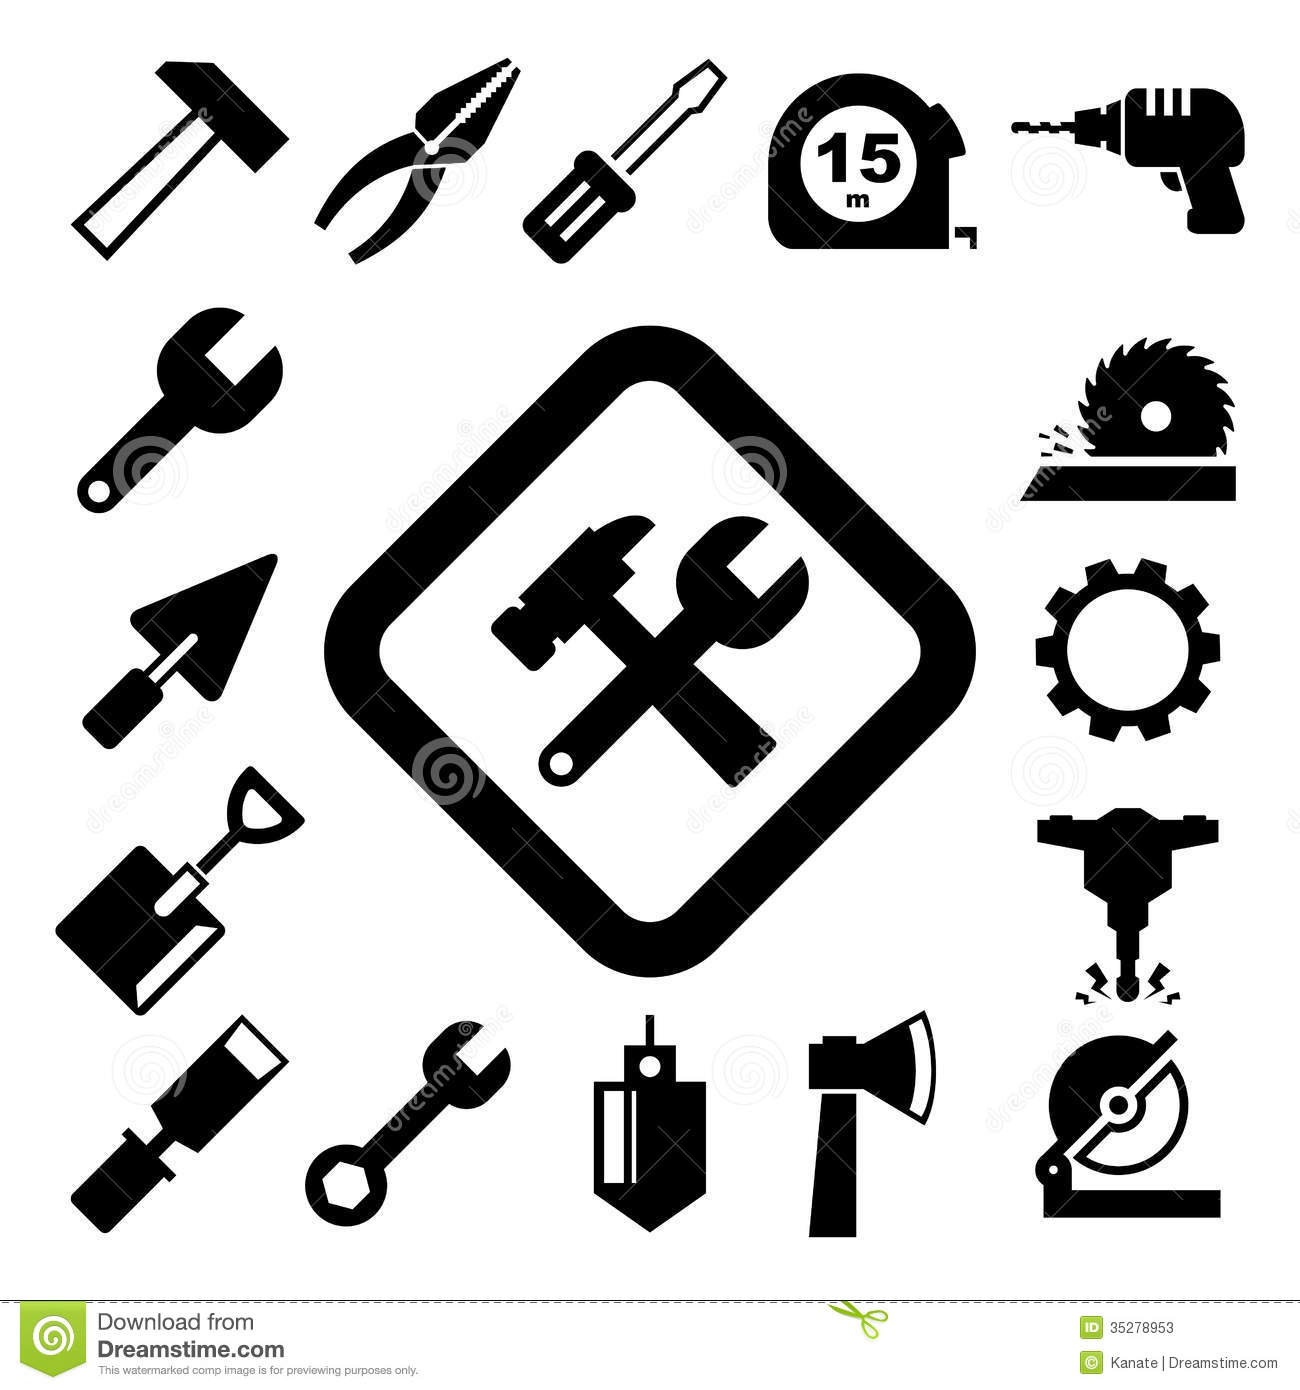 Construction Icons Set Stock Photos - Image: 35278953